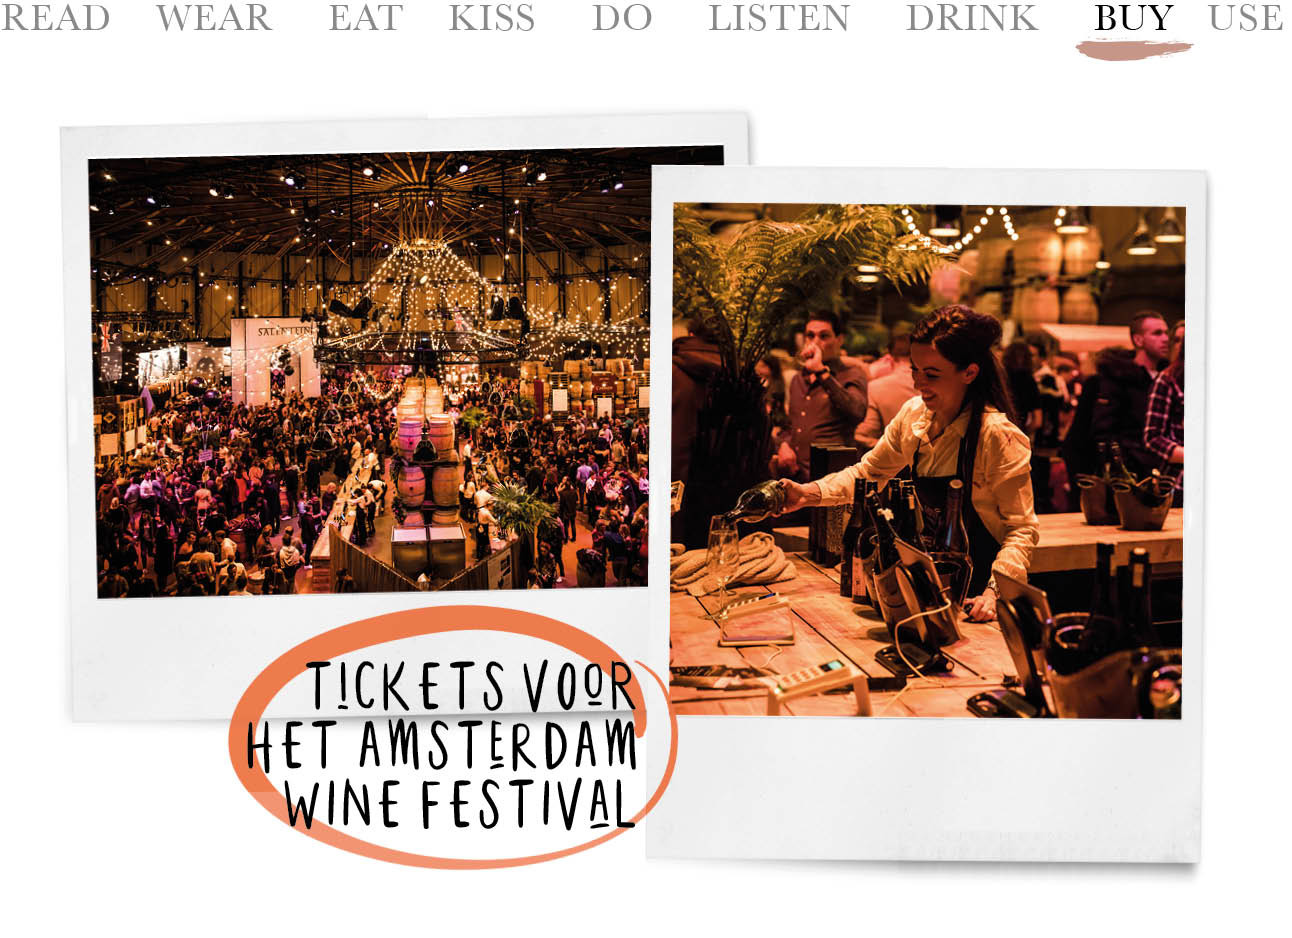 Today we buy tickets voor het Amsterdam Wine Festival